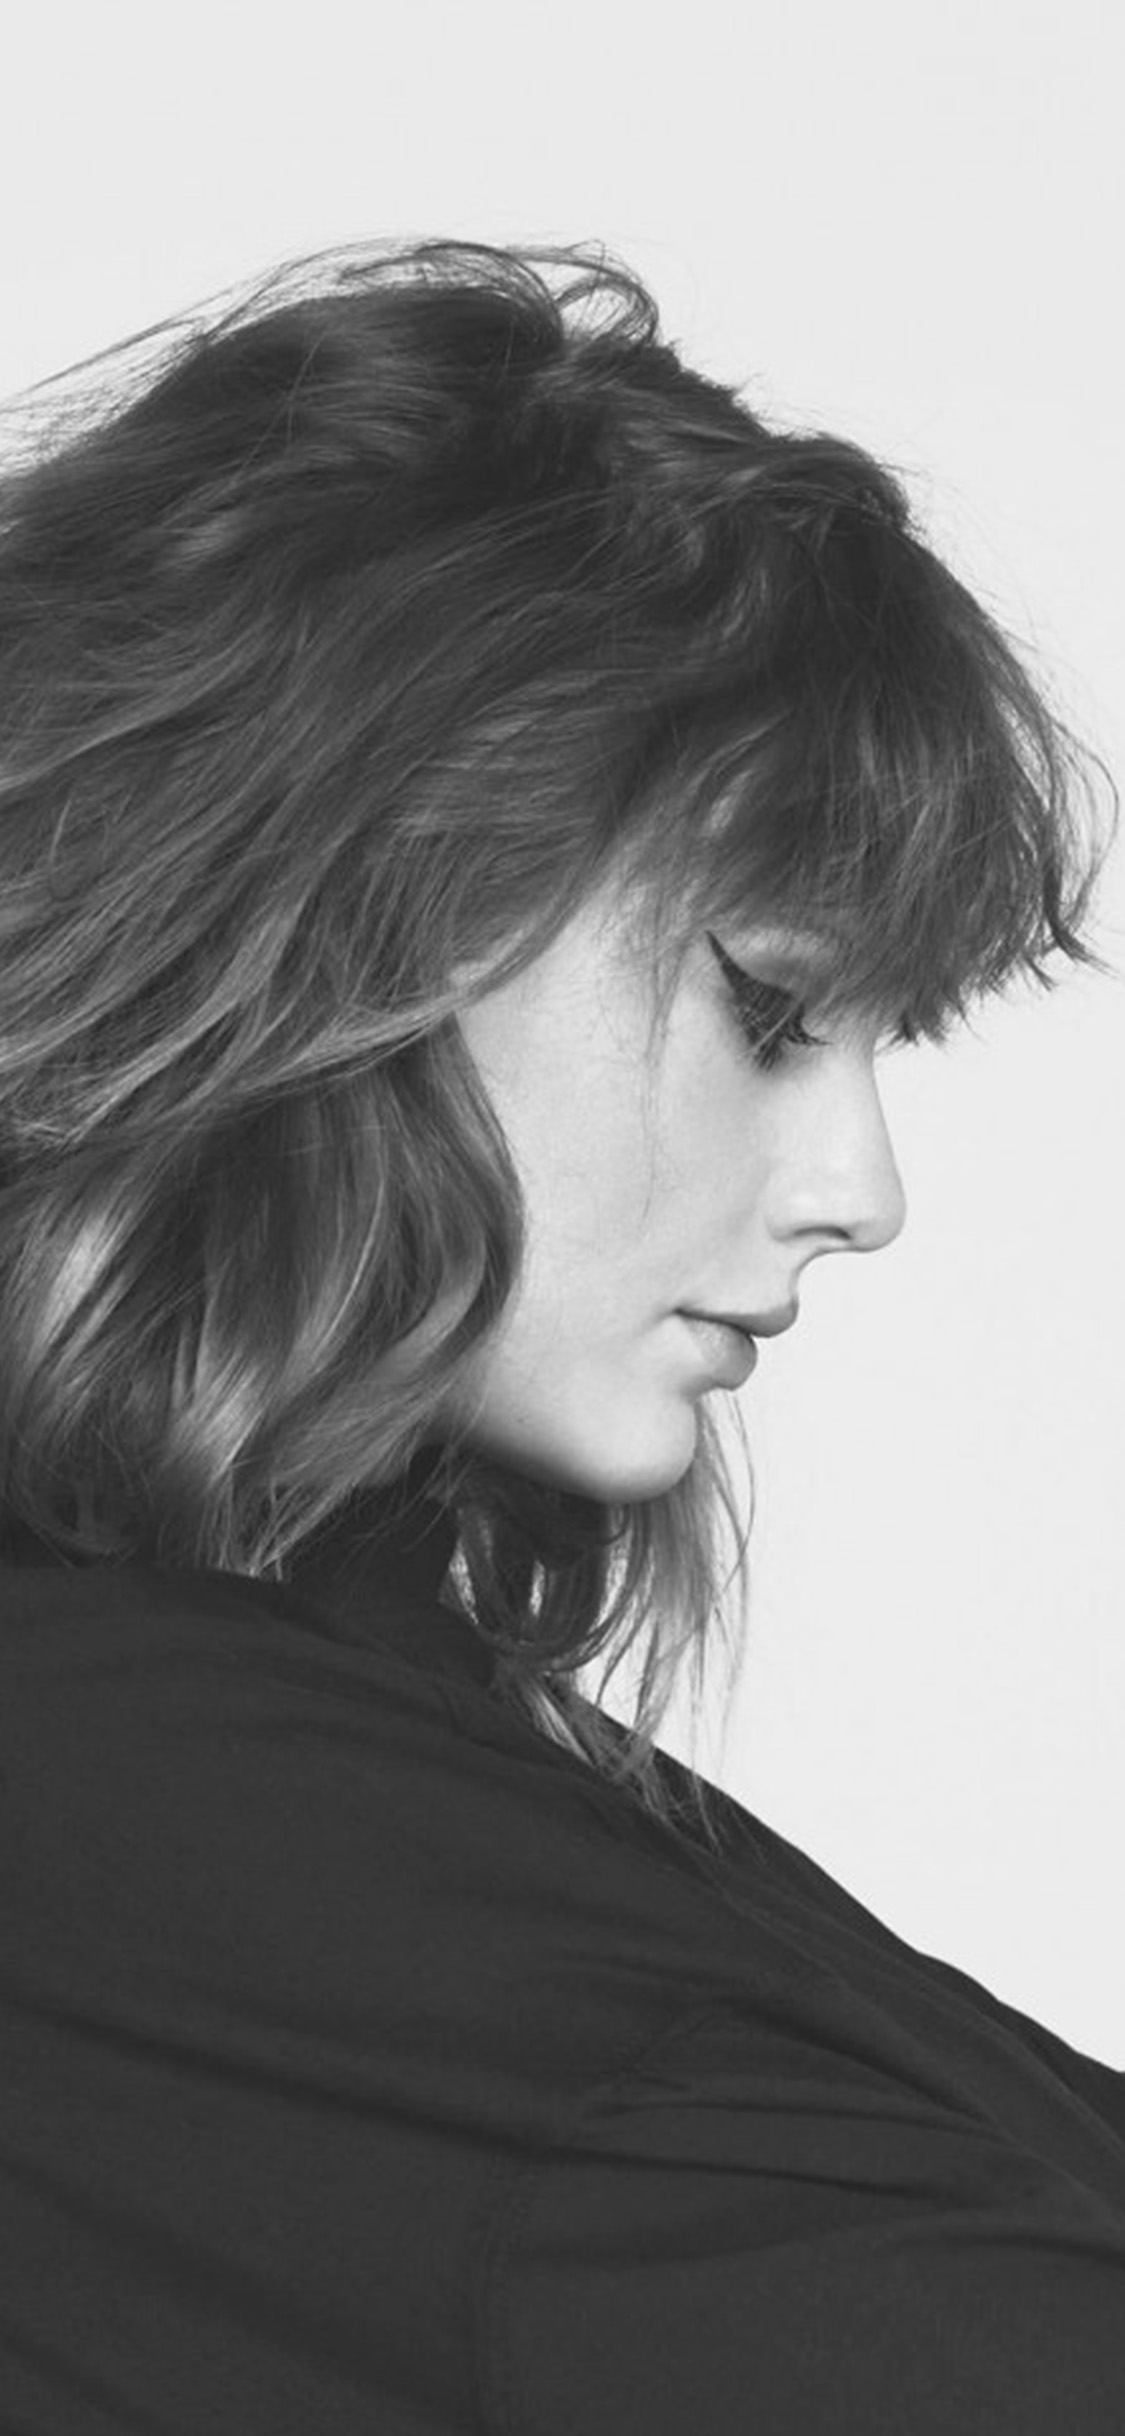 iPhonexpapers.com-Apple-iPhone-wallpaper-hq14-taylor-swift-girl-singer-femail-bw-music